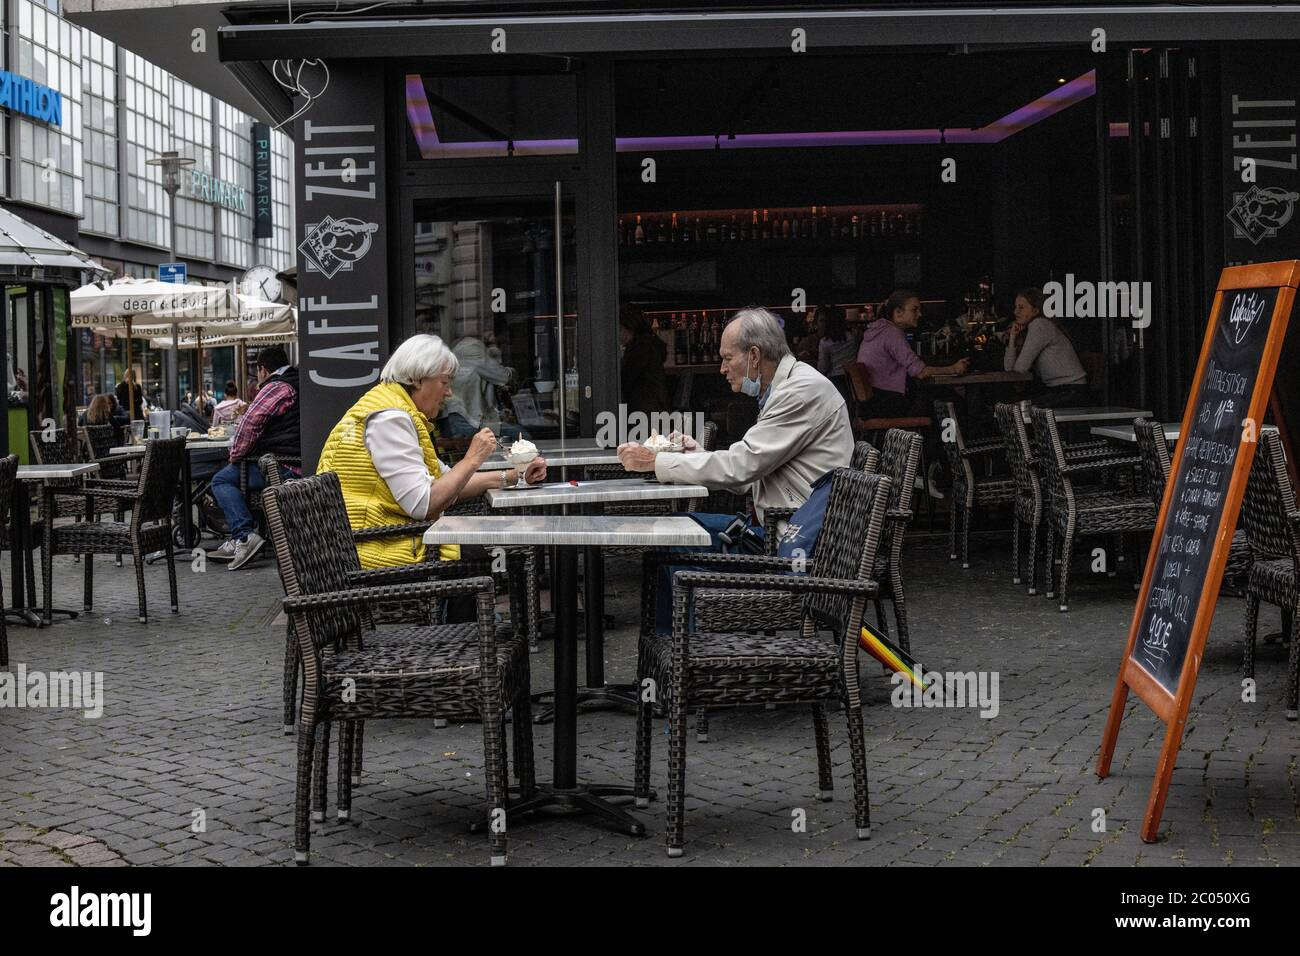 German people going about their everyday lives after the coronavirus lockdown restrictions are relaxed in Braunschweig, north-central Germany Stock Photo